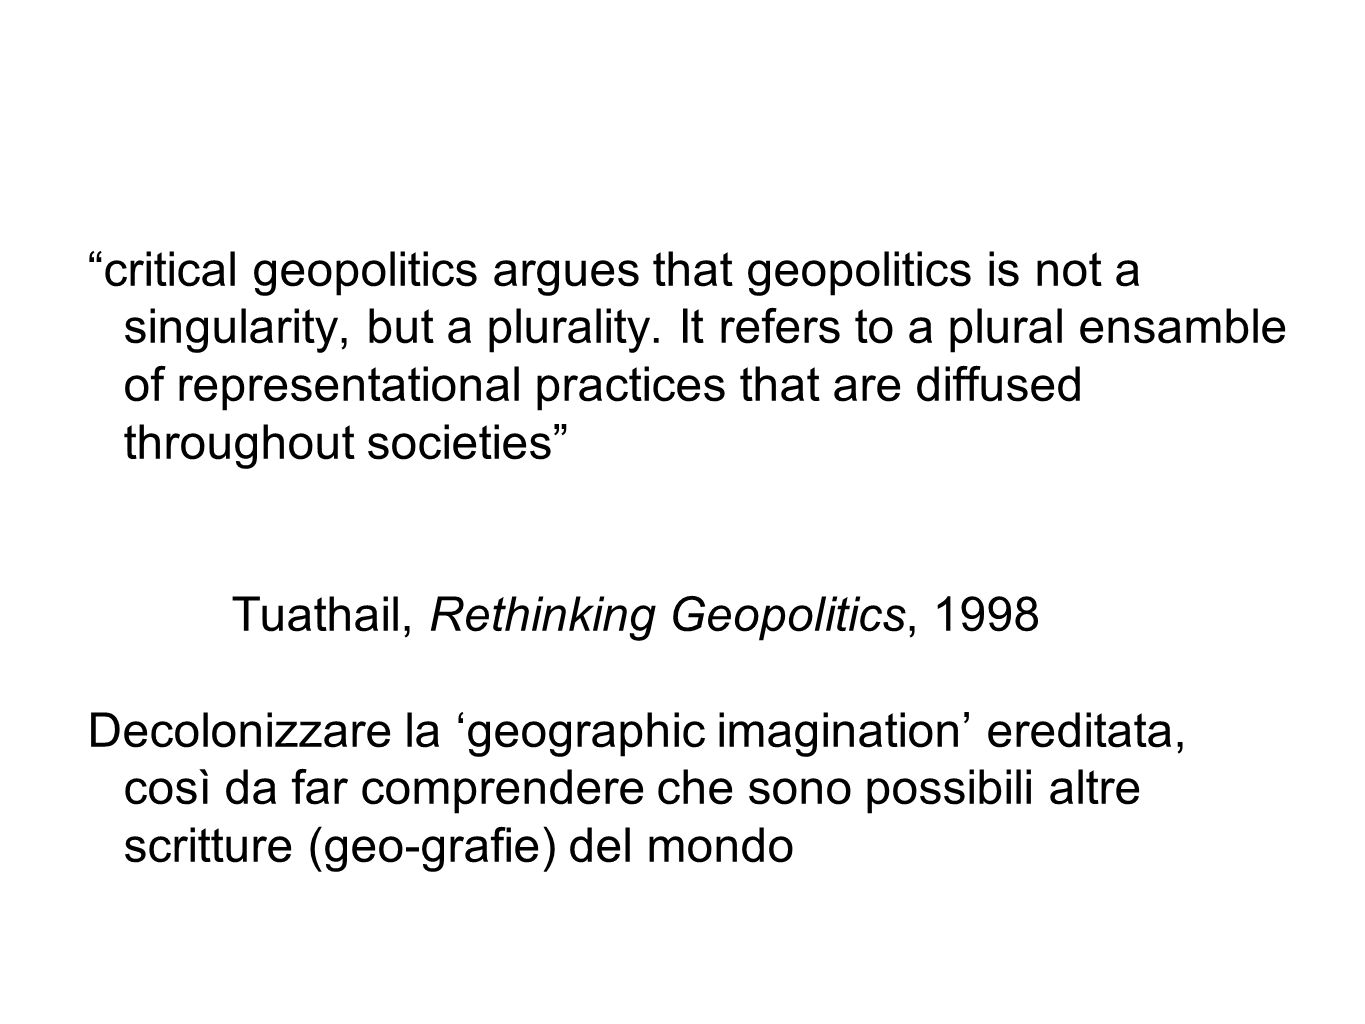 critical geopolitics argues that geopolitics is not a singularity, but a plurality.